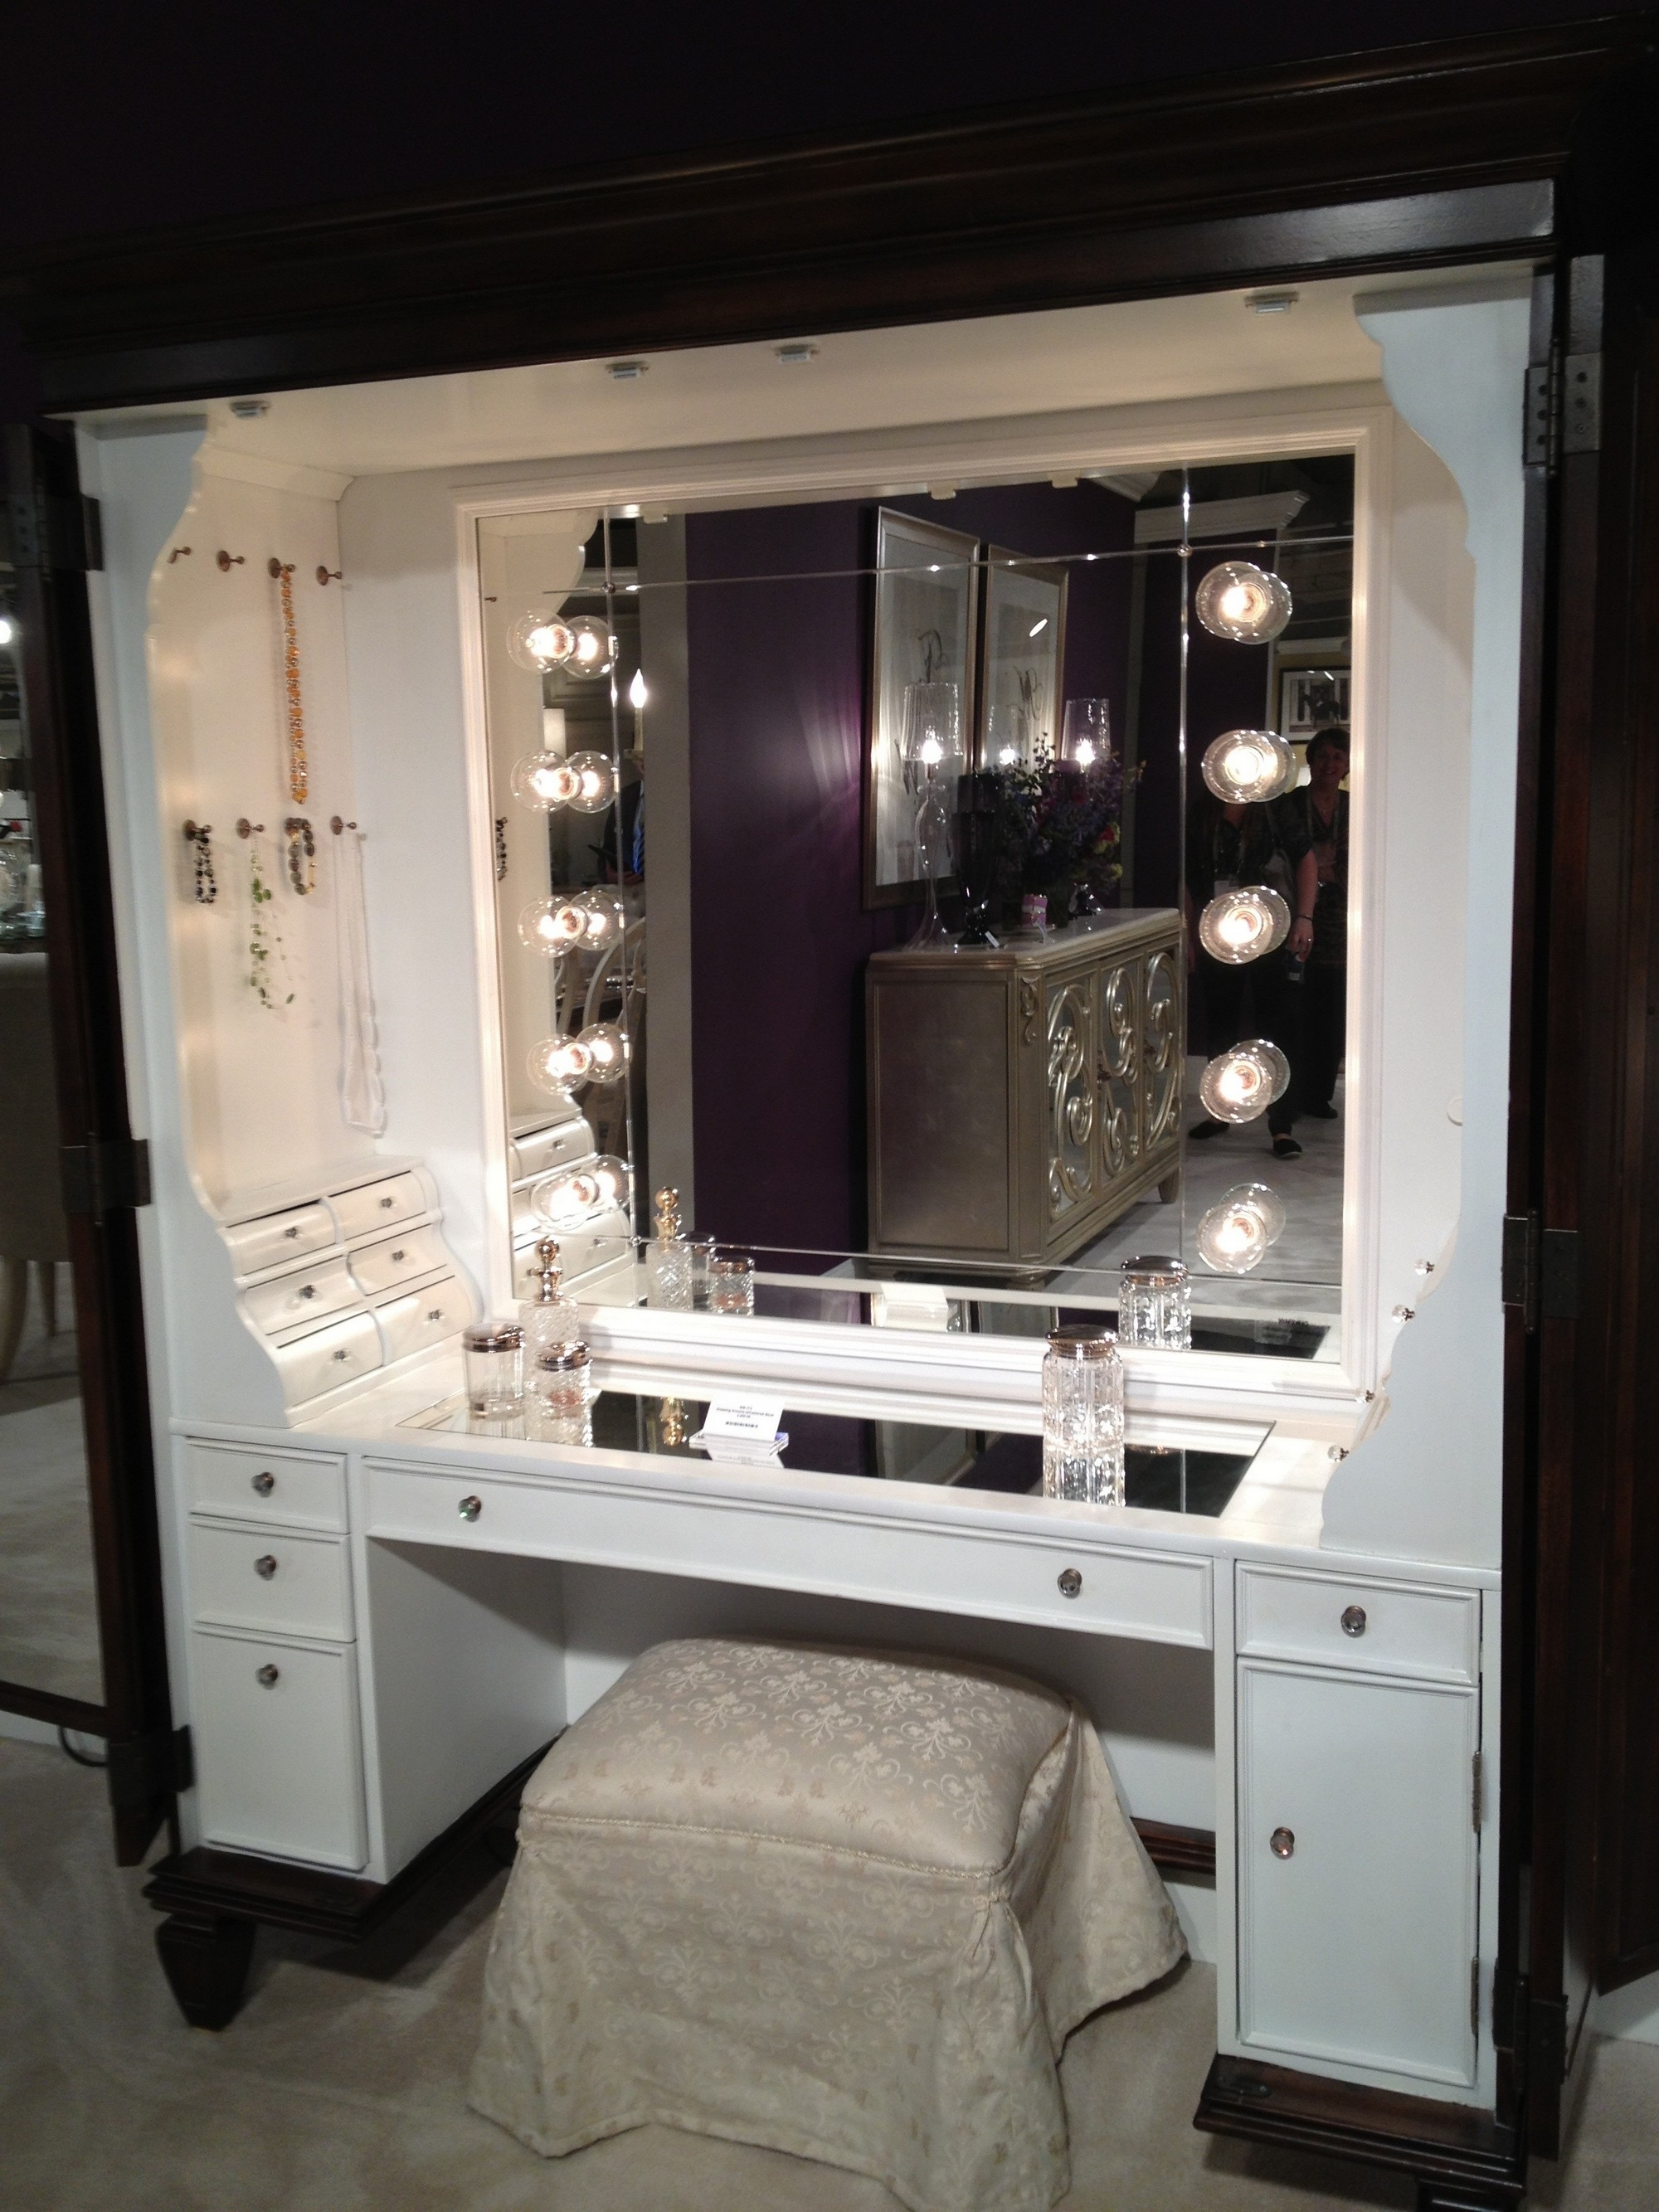 Furniture Black Makeup Table With Lighted Mirror And Small Fabric Regarding Illuminated Dressing Table Mirrors (Image 10 of 15)